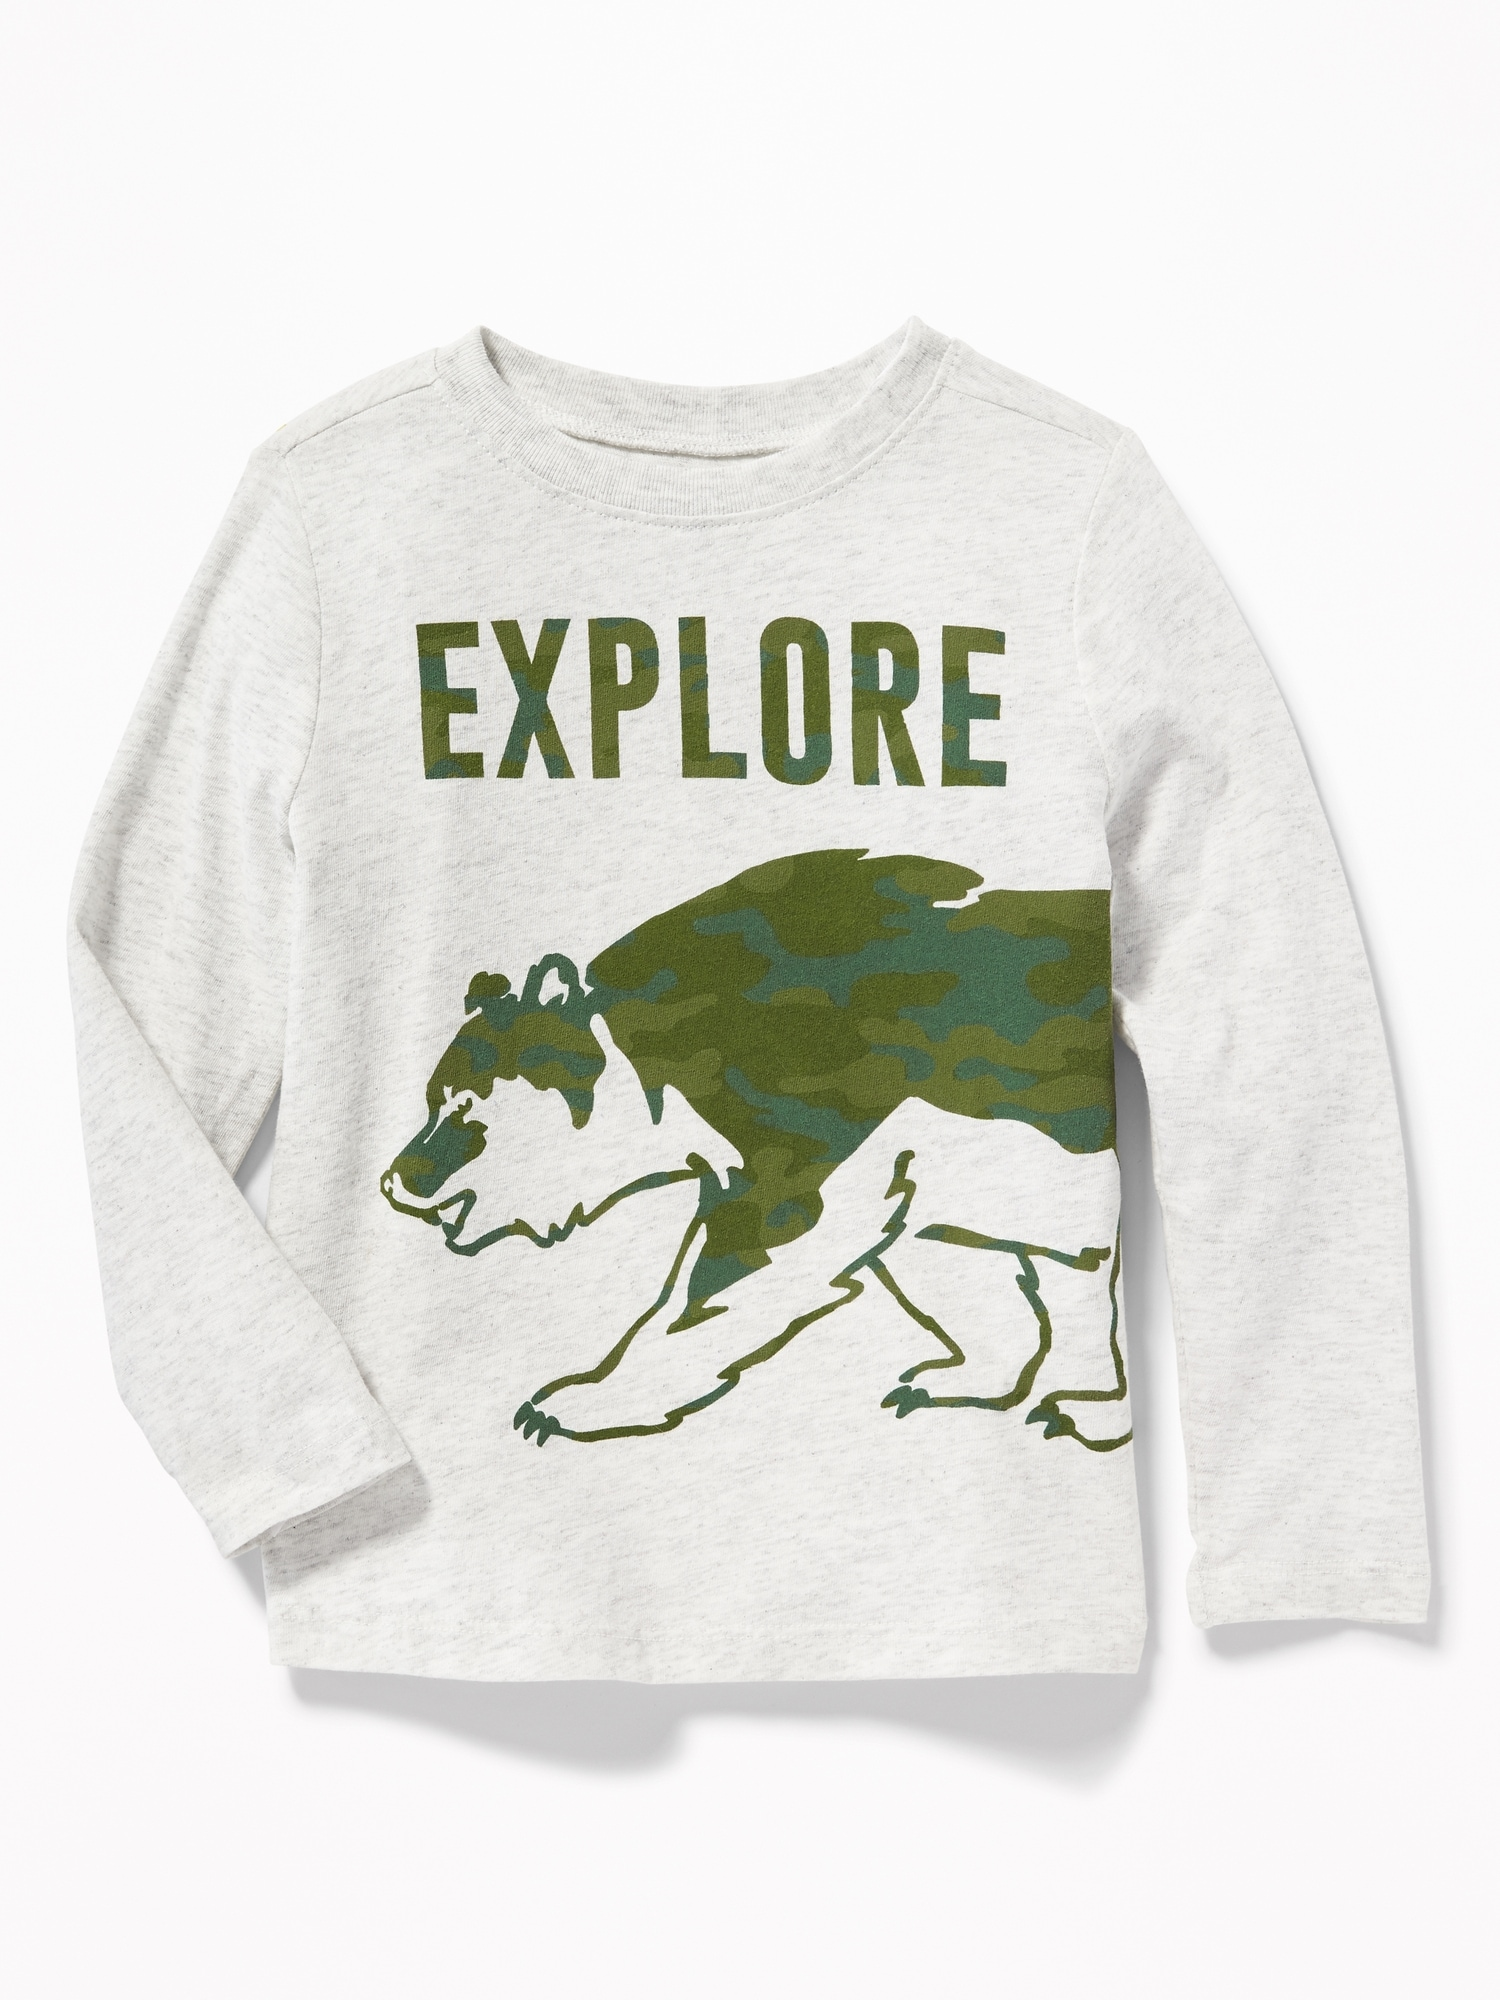 47efb8a243595 Graphic Crew Neck Tee for Toddler Boys